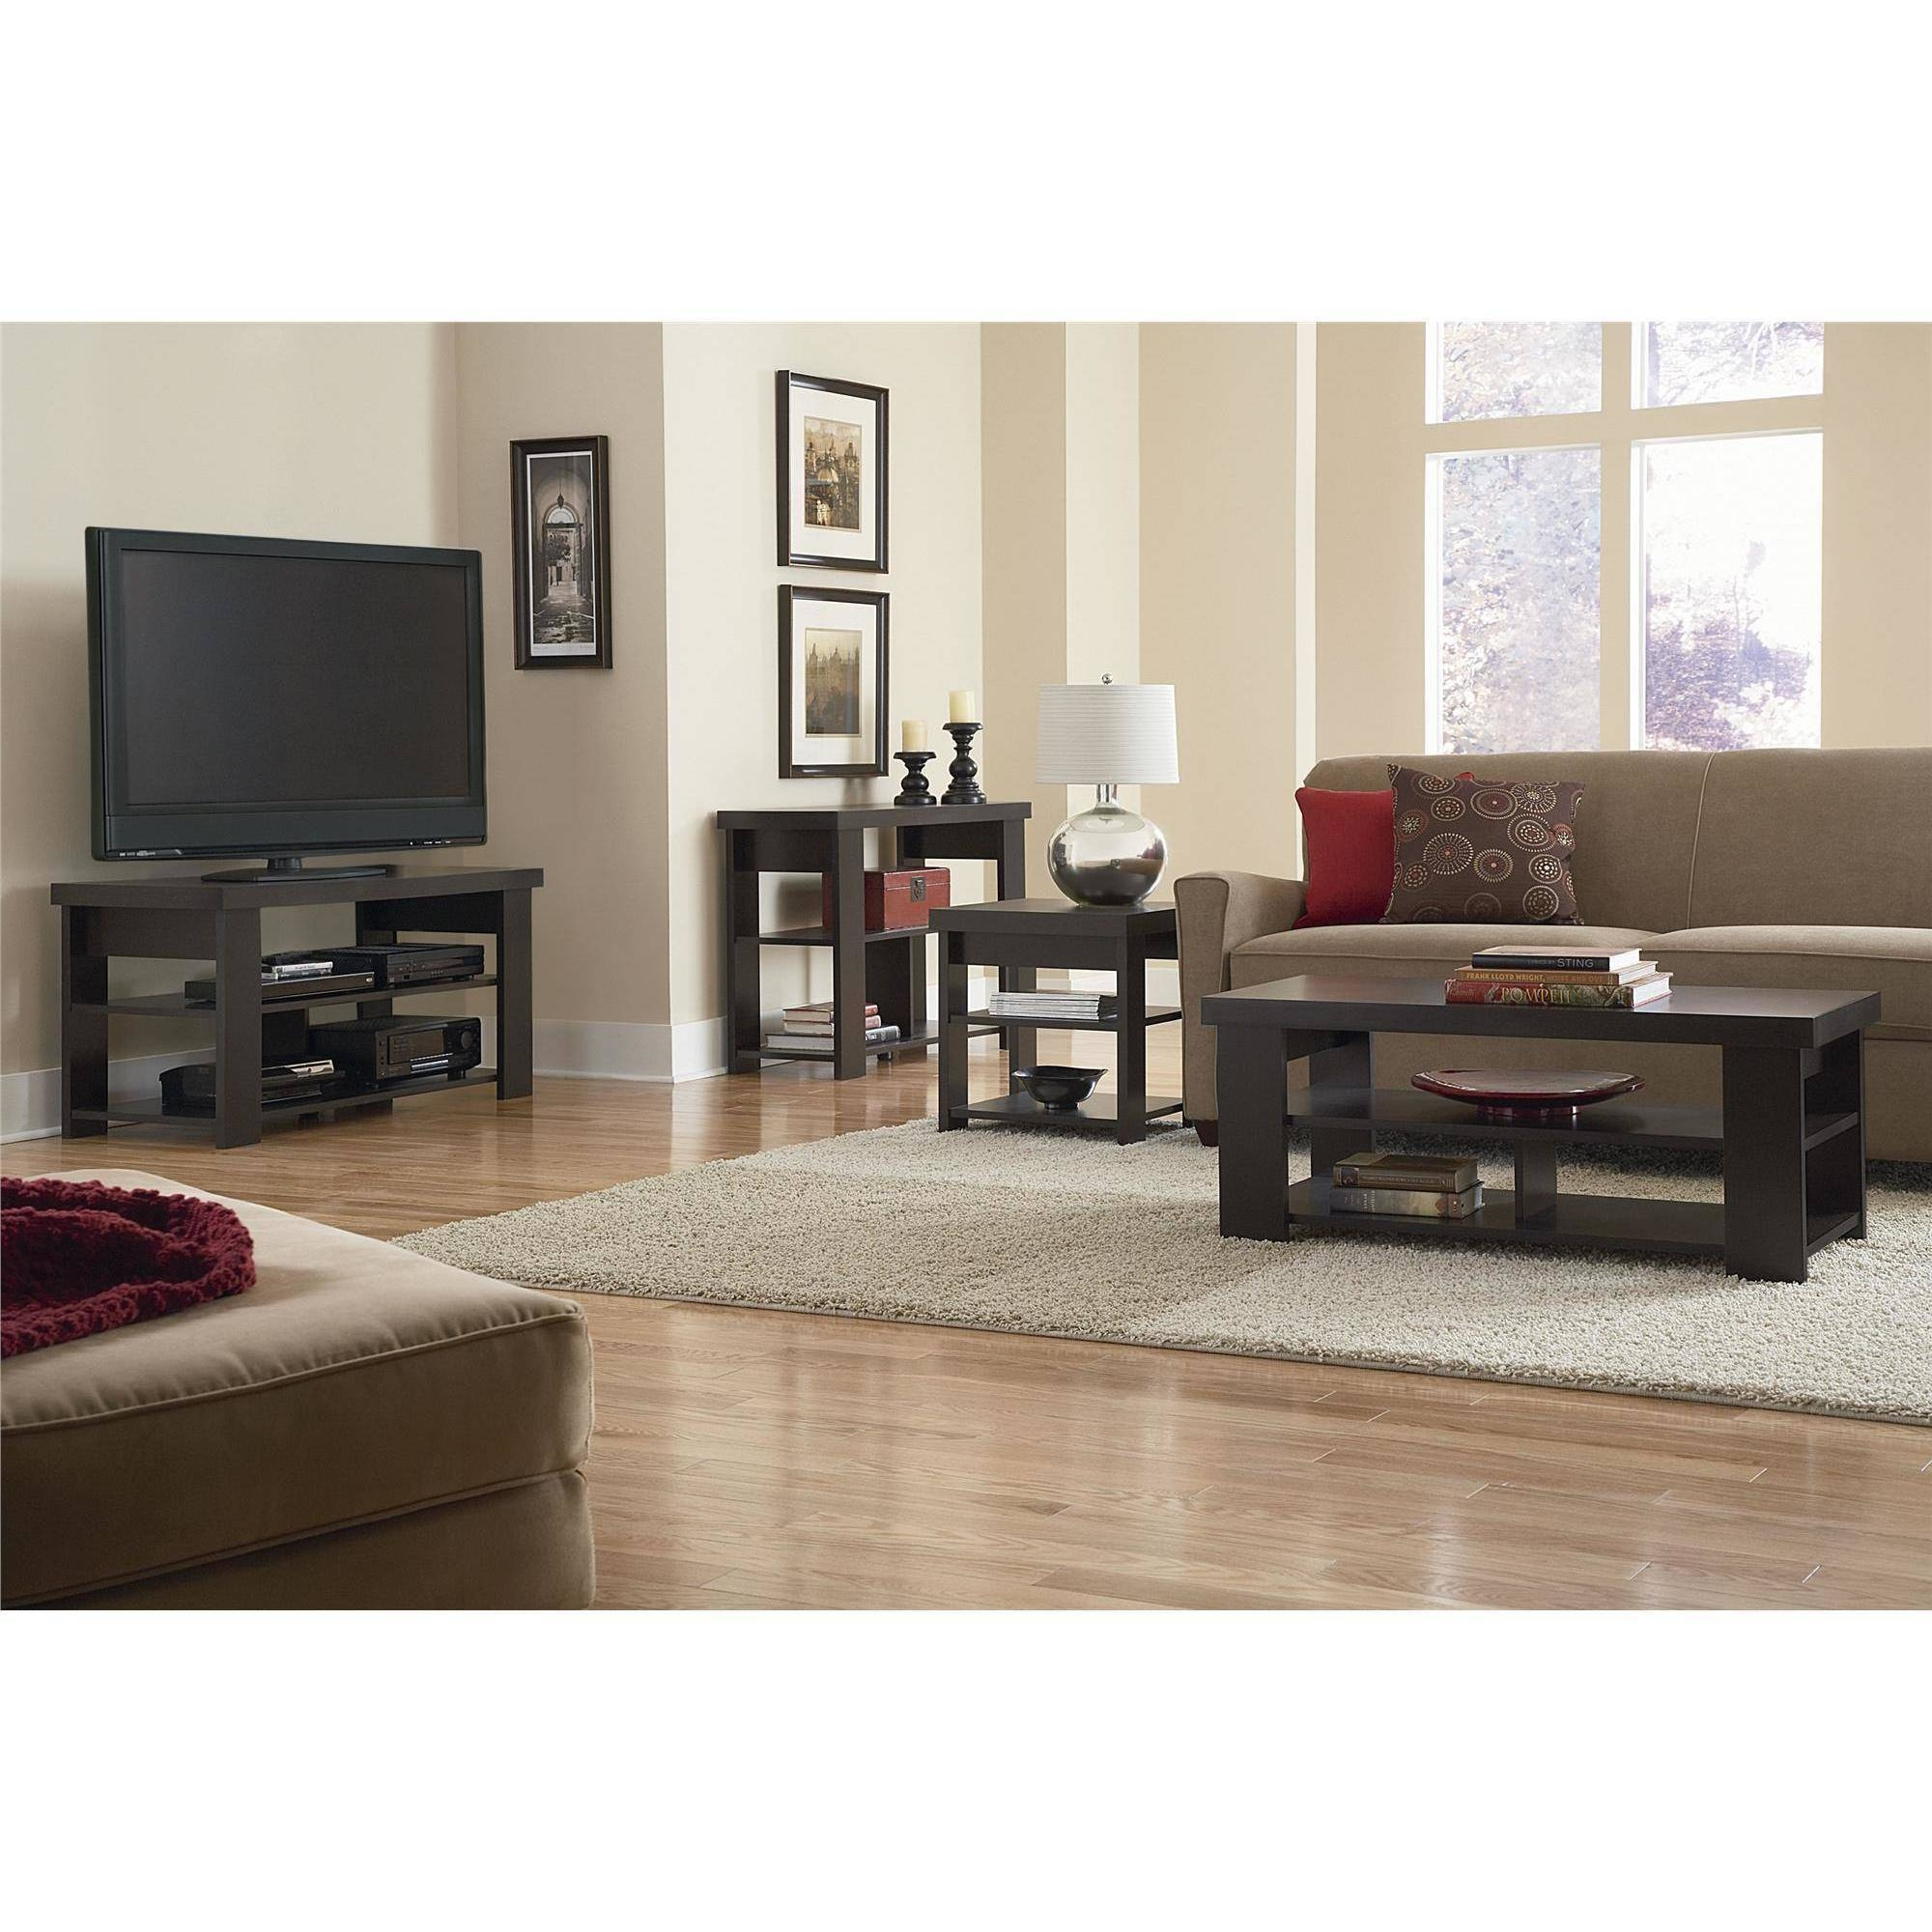 Ameriwood Home Jensen Coffee Table, Espresso - Walmart within Tv Stand Coffee Table Sets (Image 5 of 30)